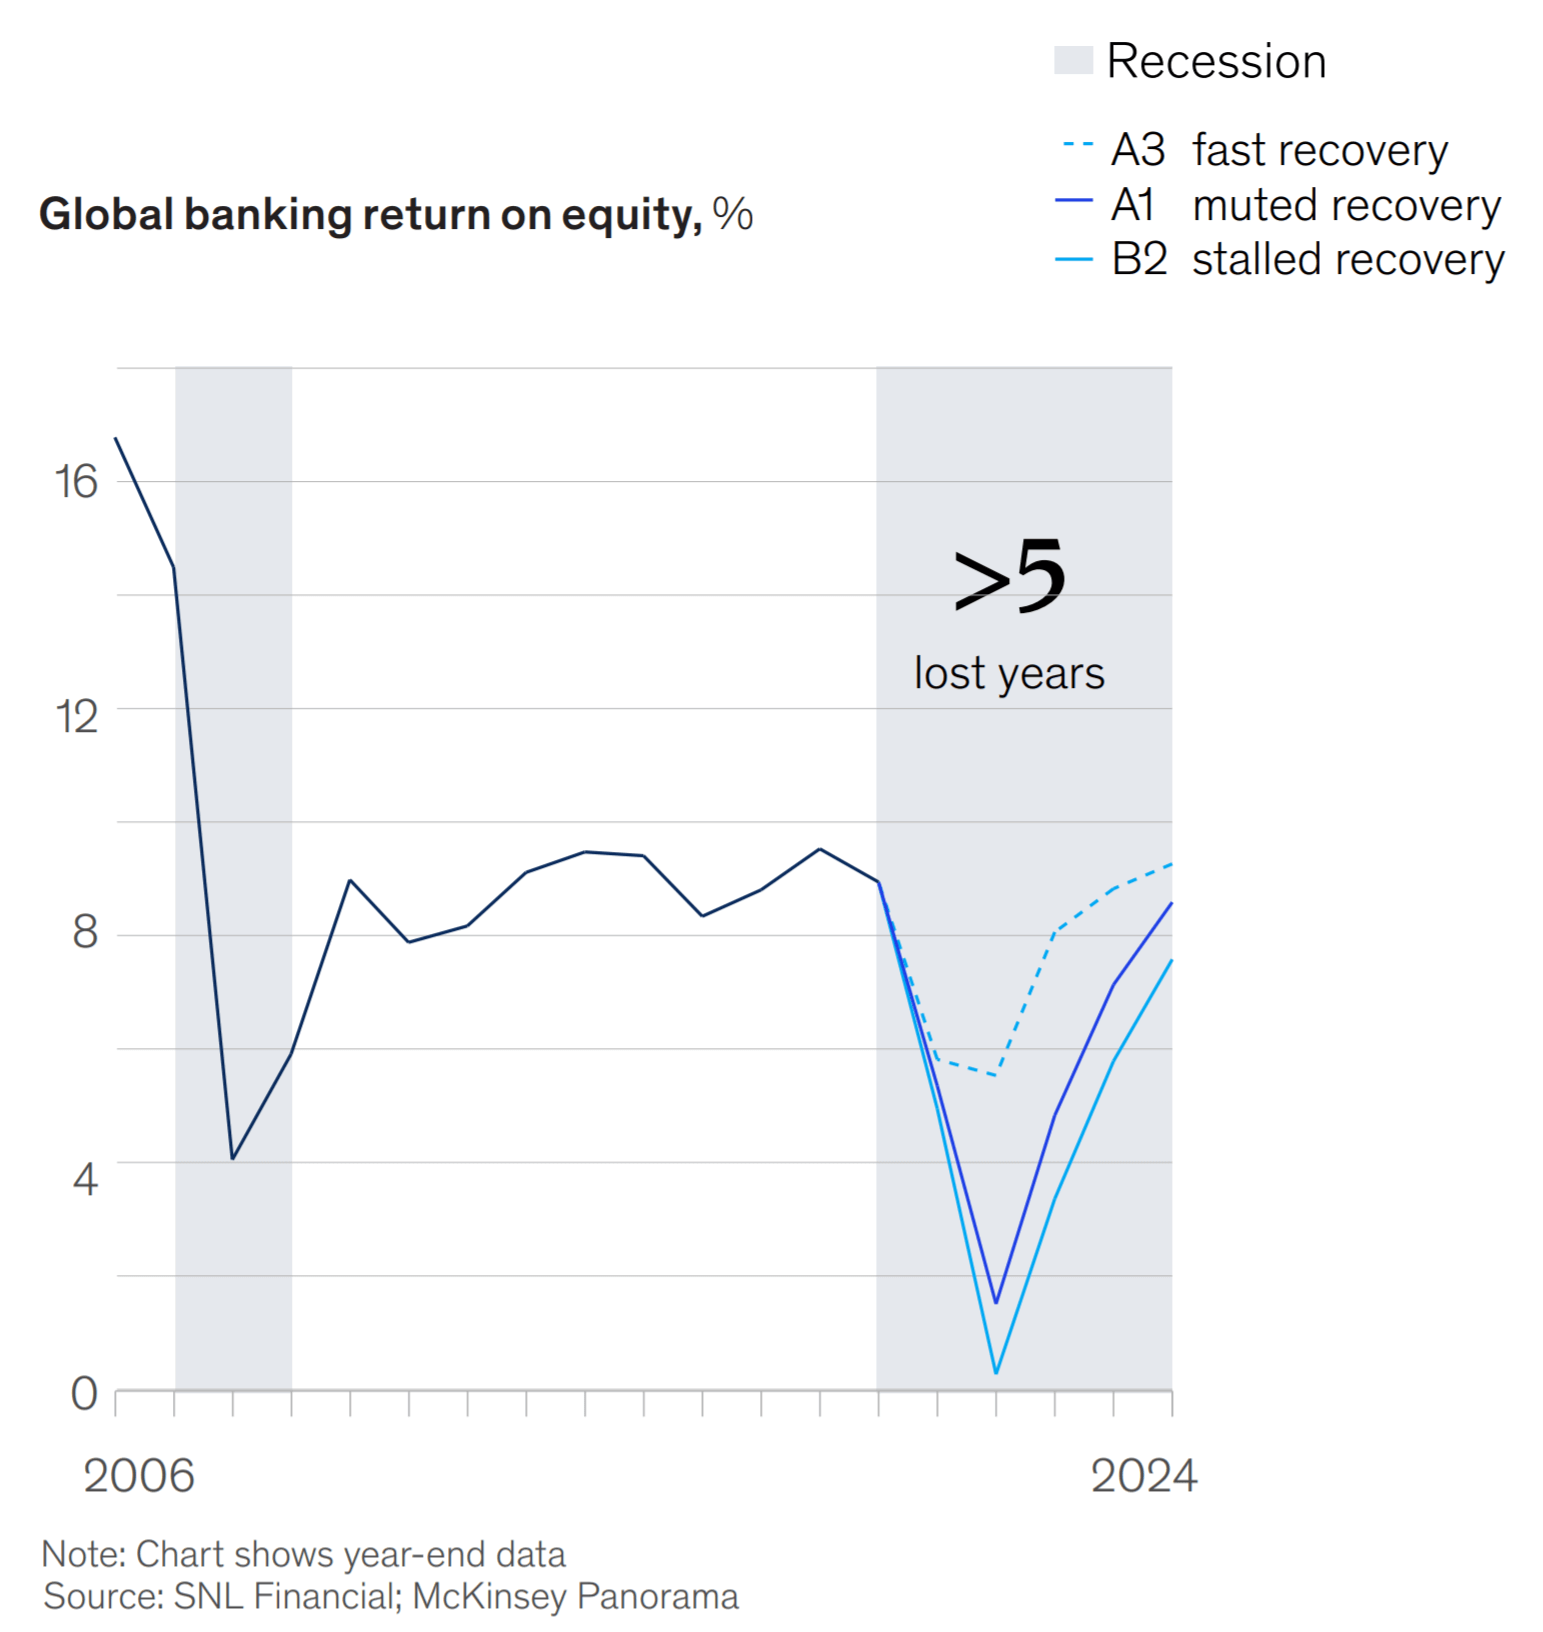 McKinsey expects global banking ROEs not to return to pre-crisis levels for at least five years